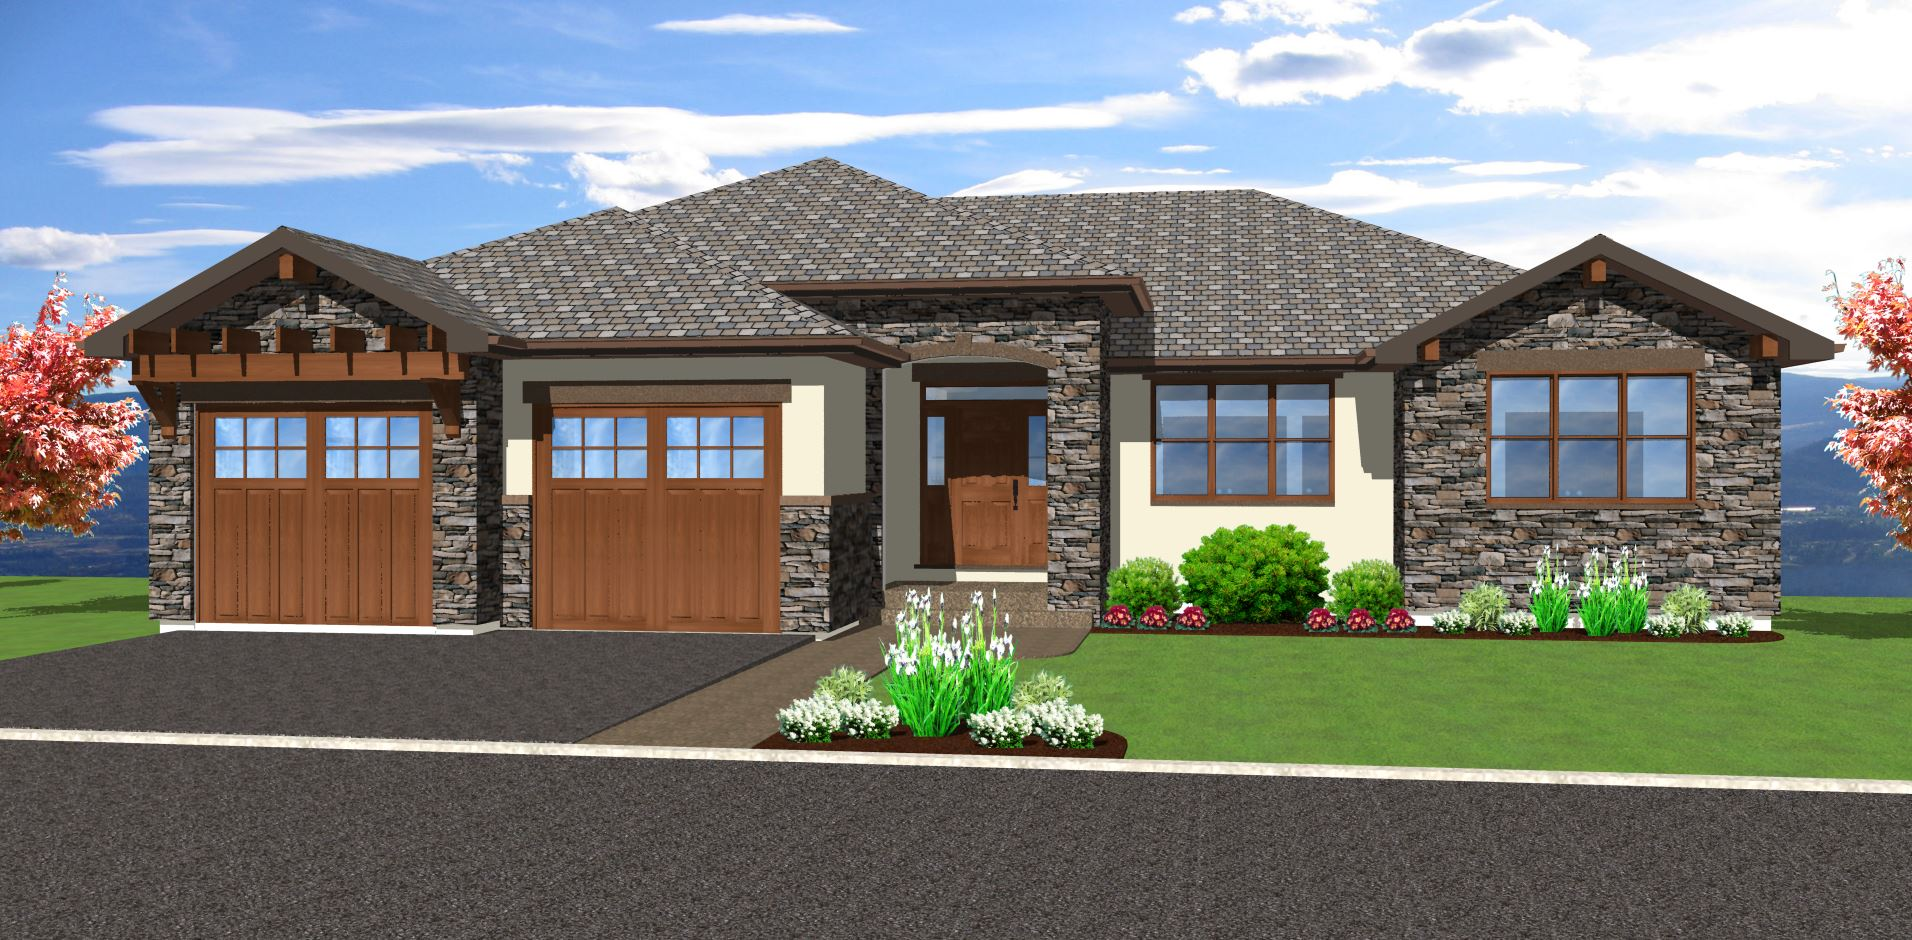 Spacious hillside home with walkout basement 67702mg Modern home plans with basement